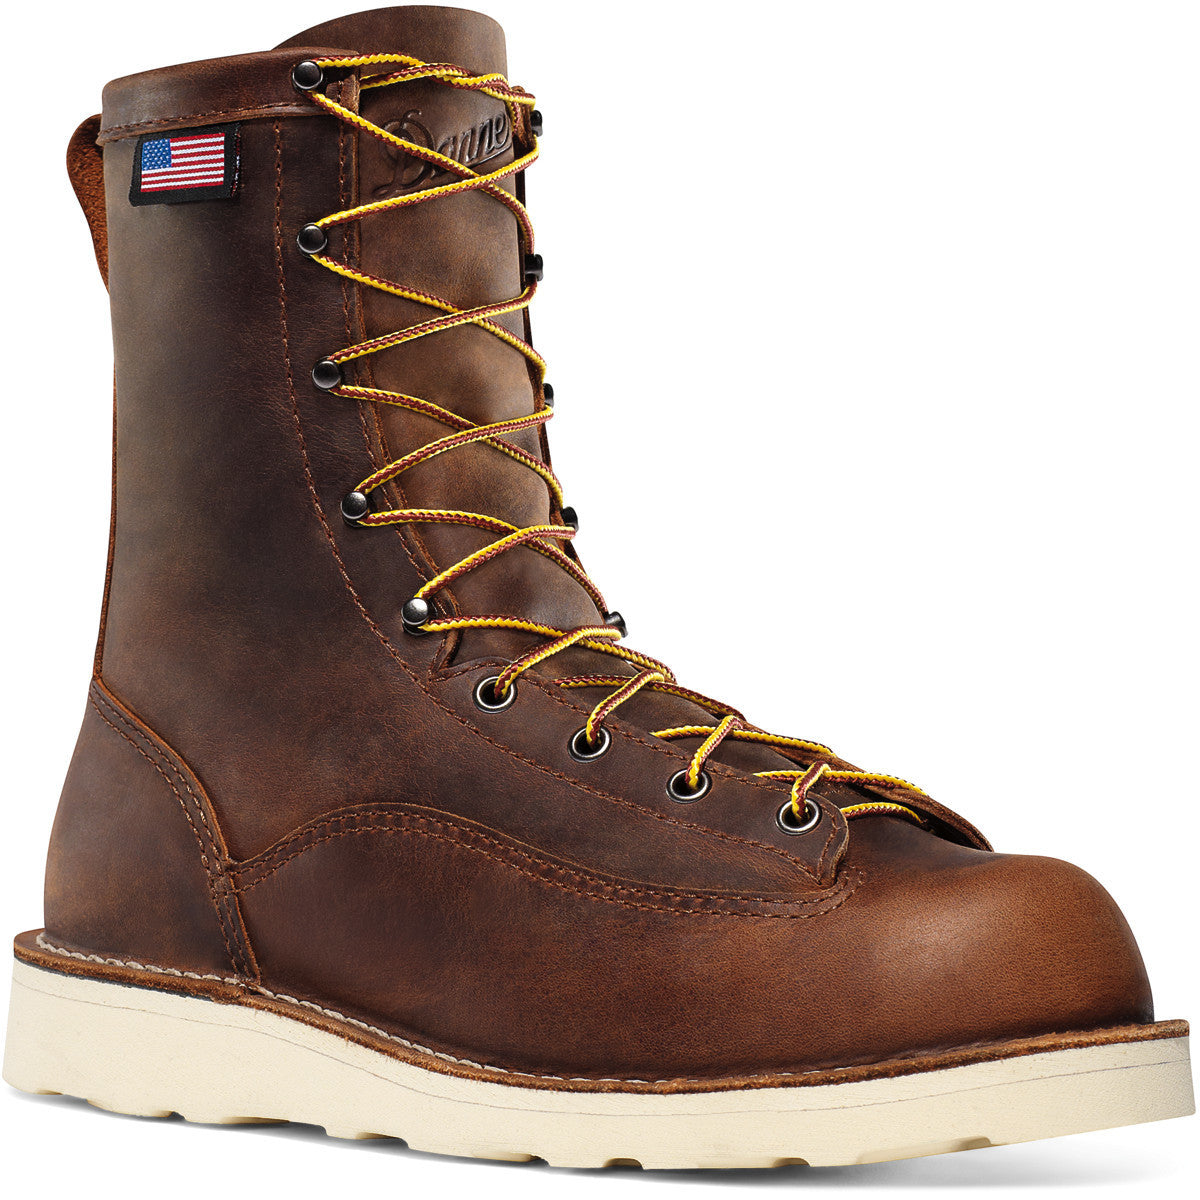 "DANNER BULL RUN 8"" BROWN CRISTY"